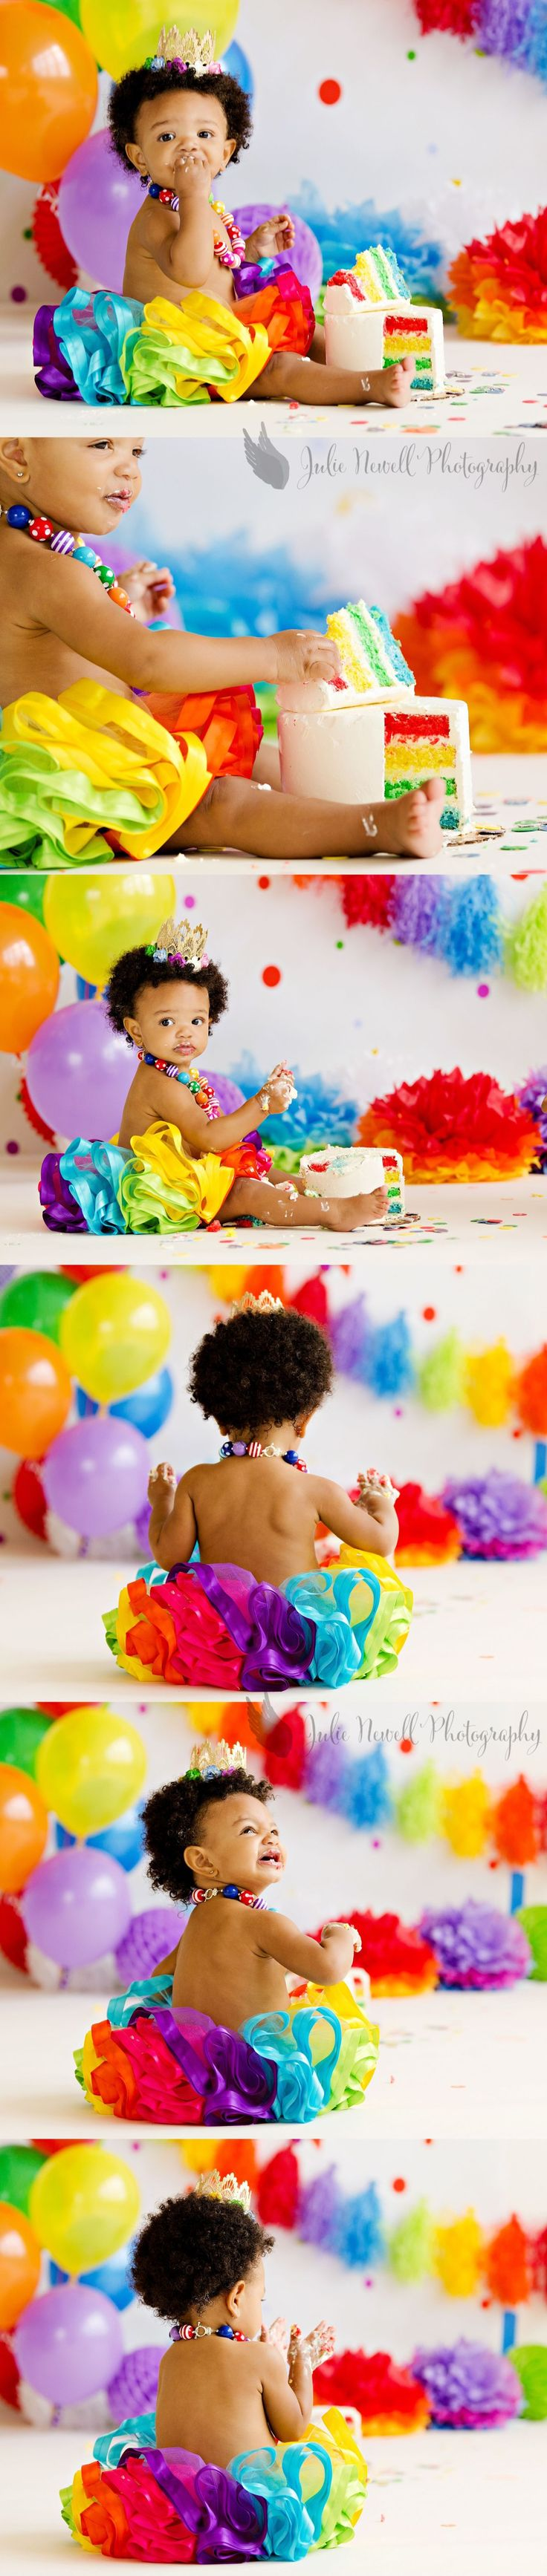 Best St Birthday Images On Pinterest Baby Photographer - Childrens birthday party ideas taunton